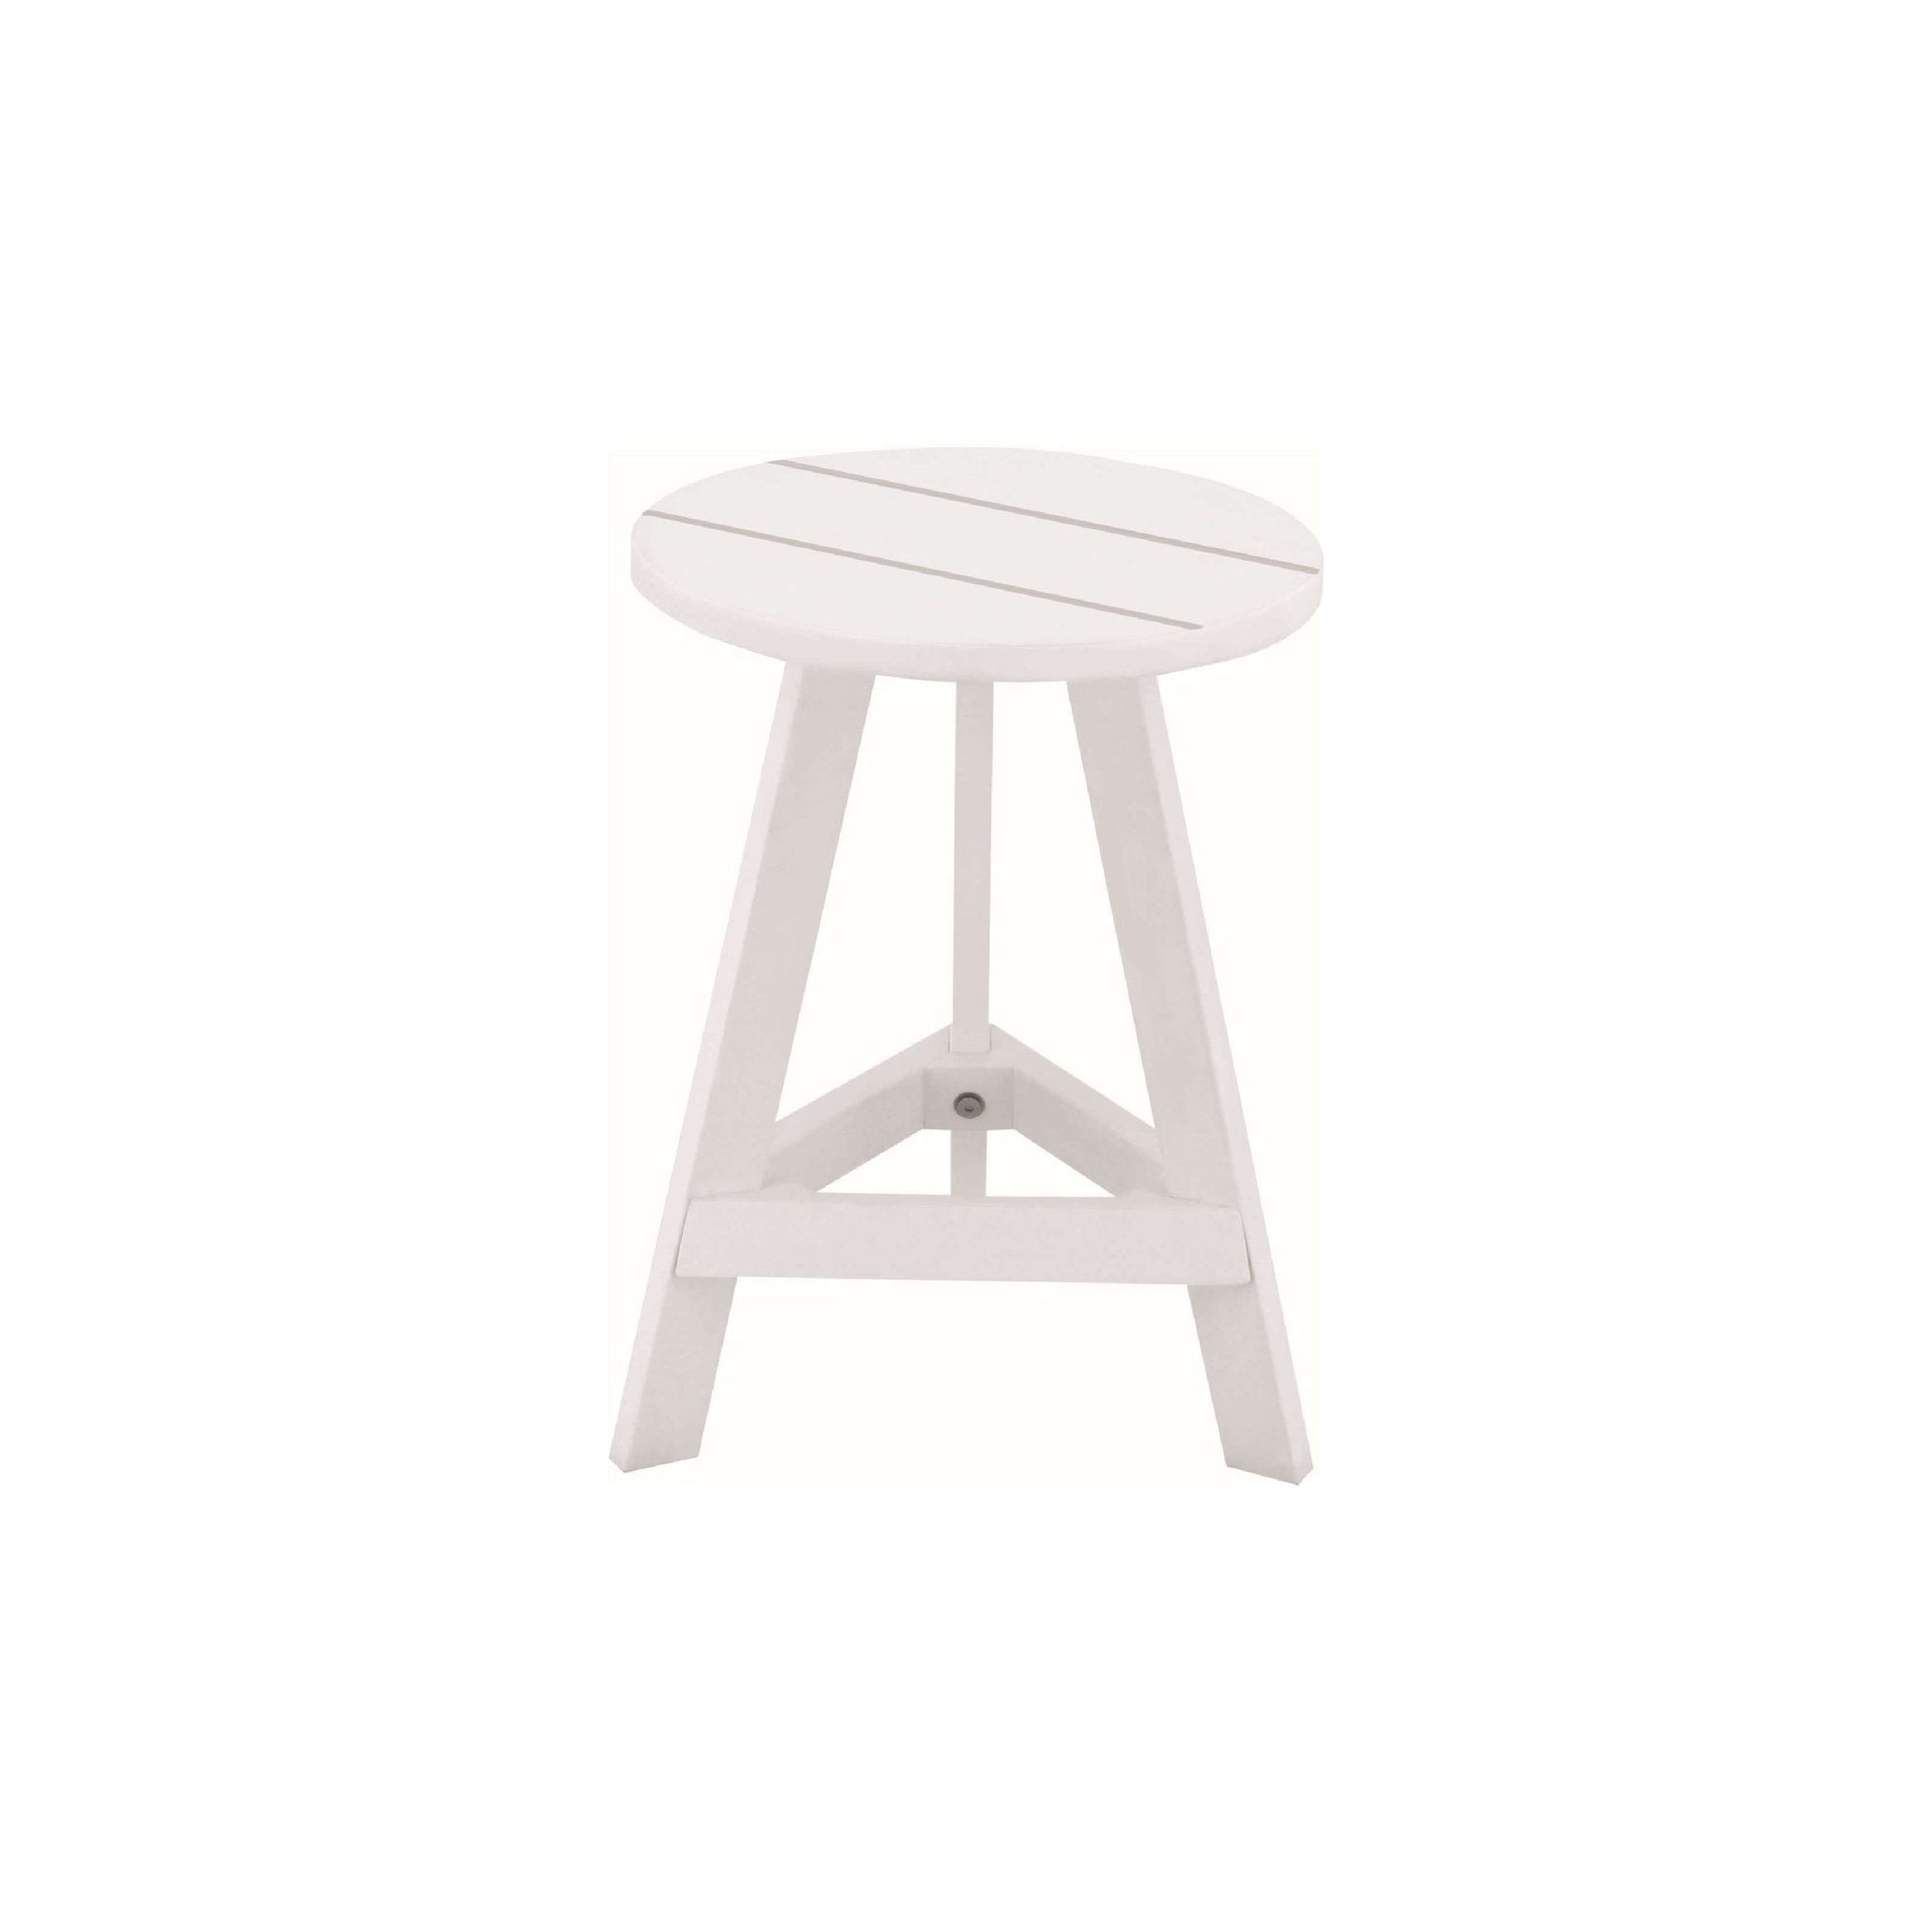 YUMI 4 X Stool in White Lacquered